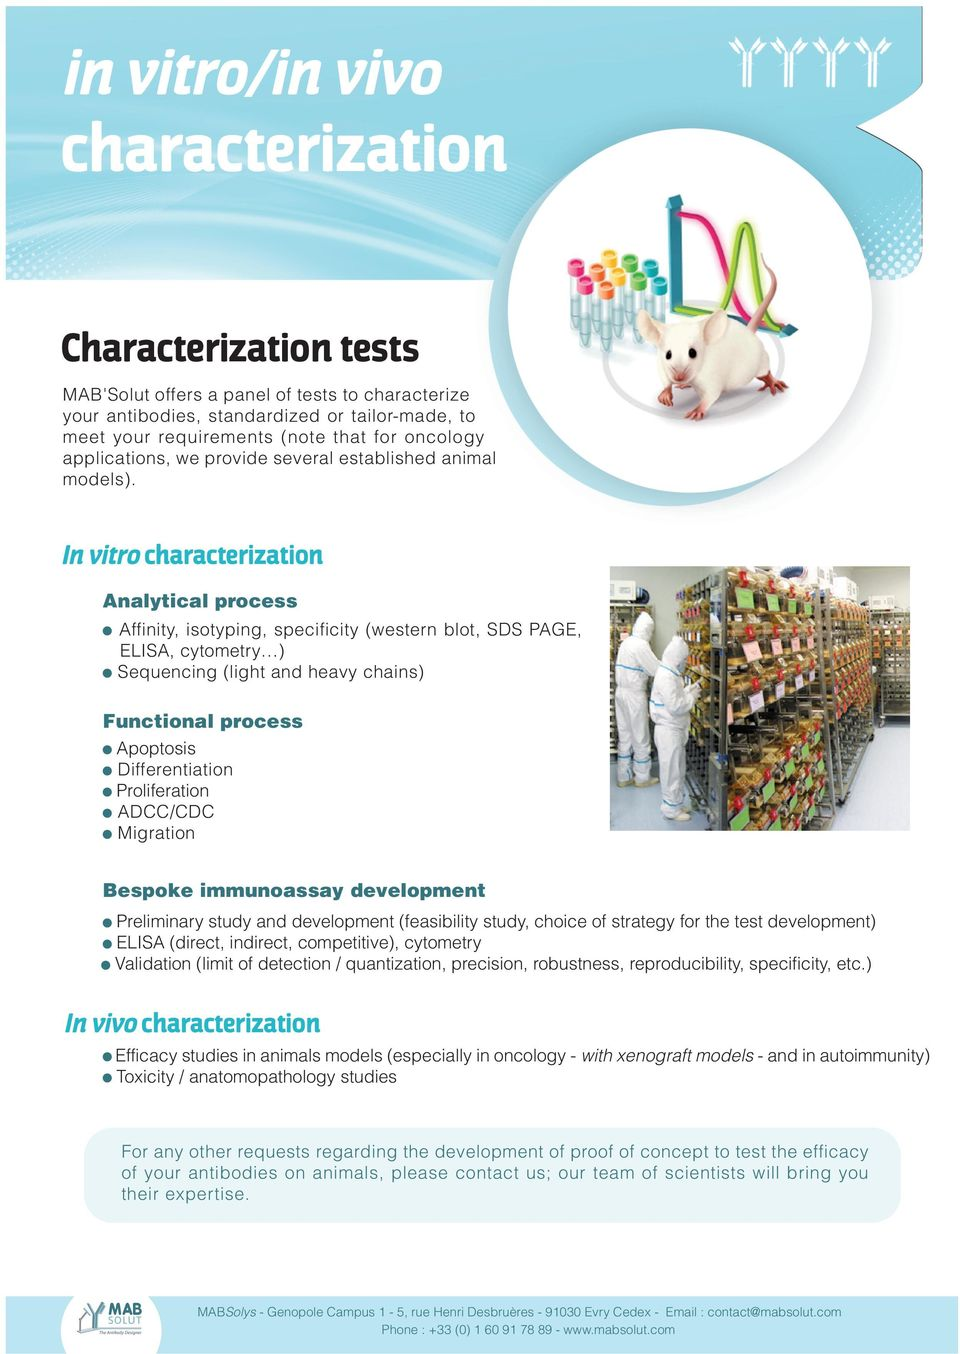 In vitro characterization Analytical process Affinity, isotyping, specificity (western blot, SDS PAGE, ELISA, cytometry ) Sequencing (light and heavy chains) Functional process Apoptosis